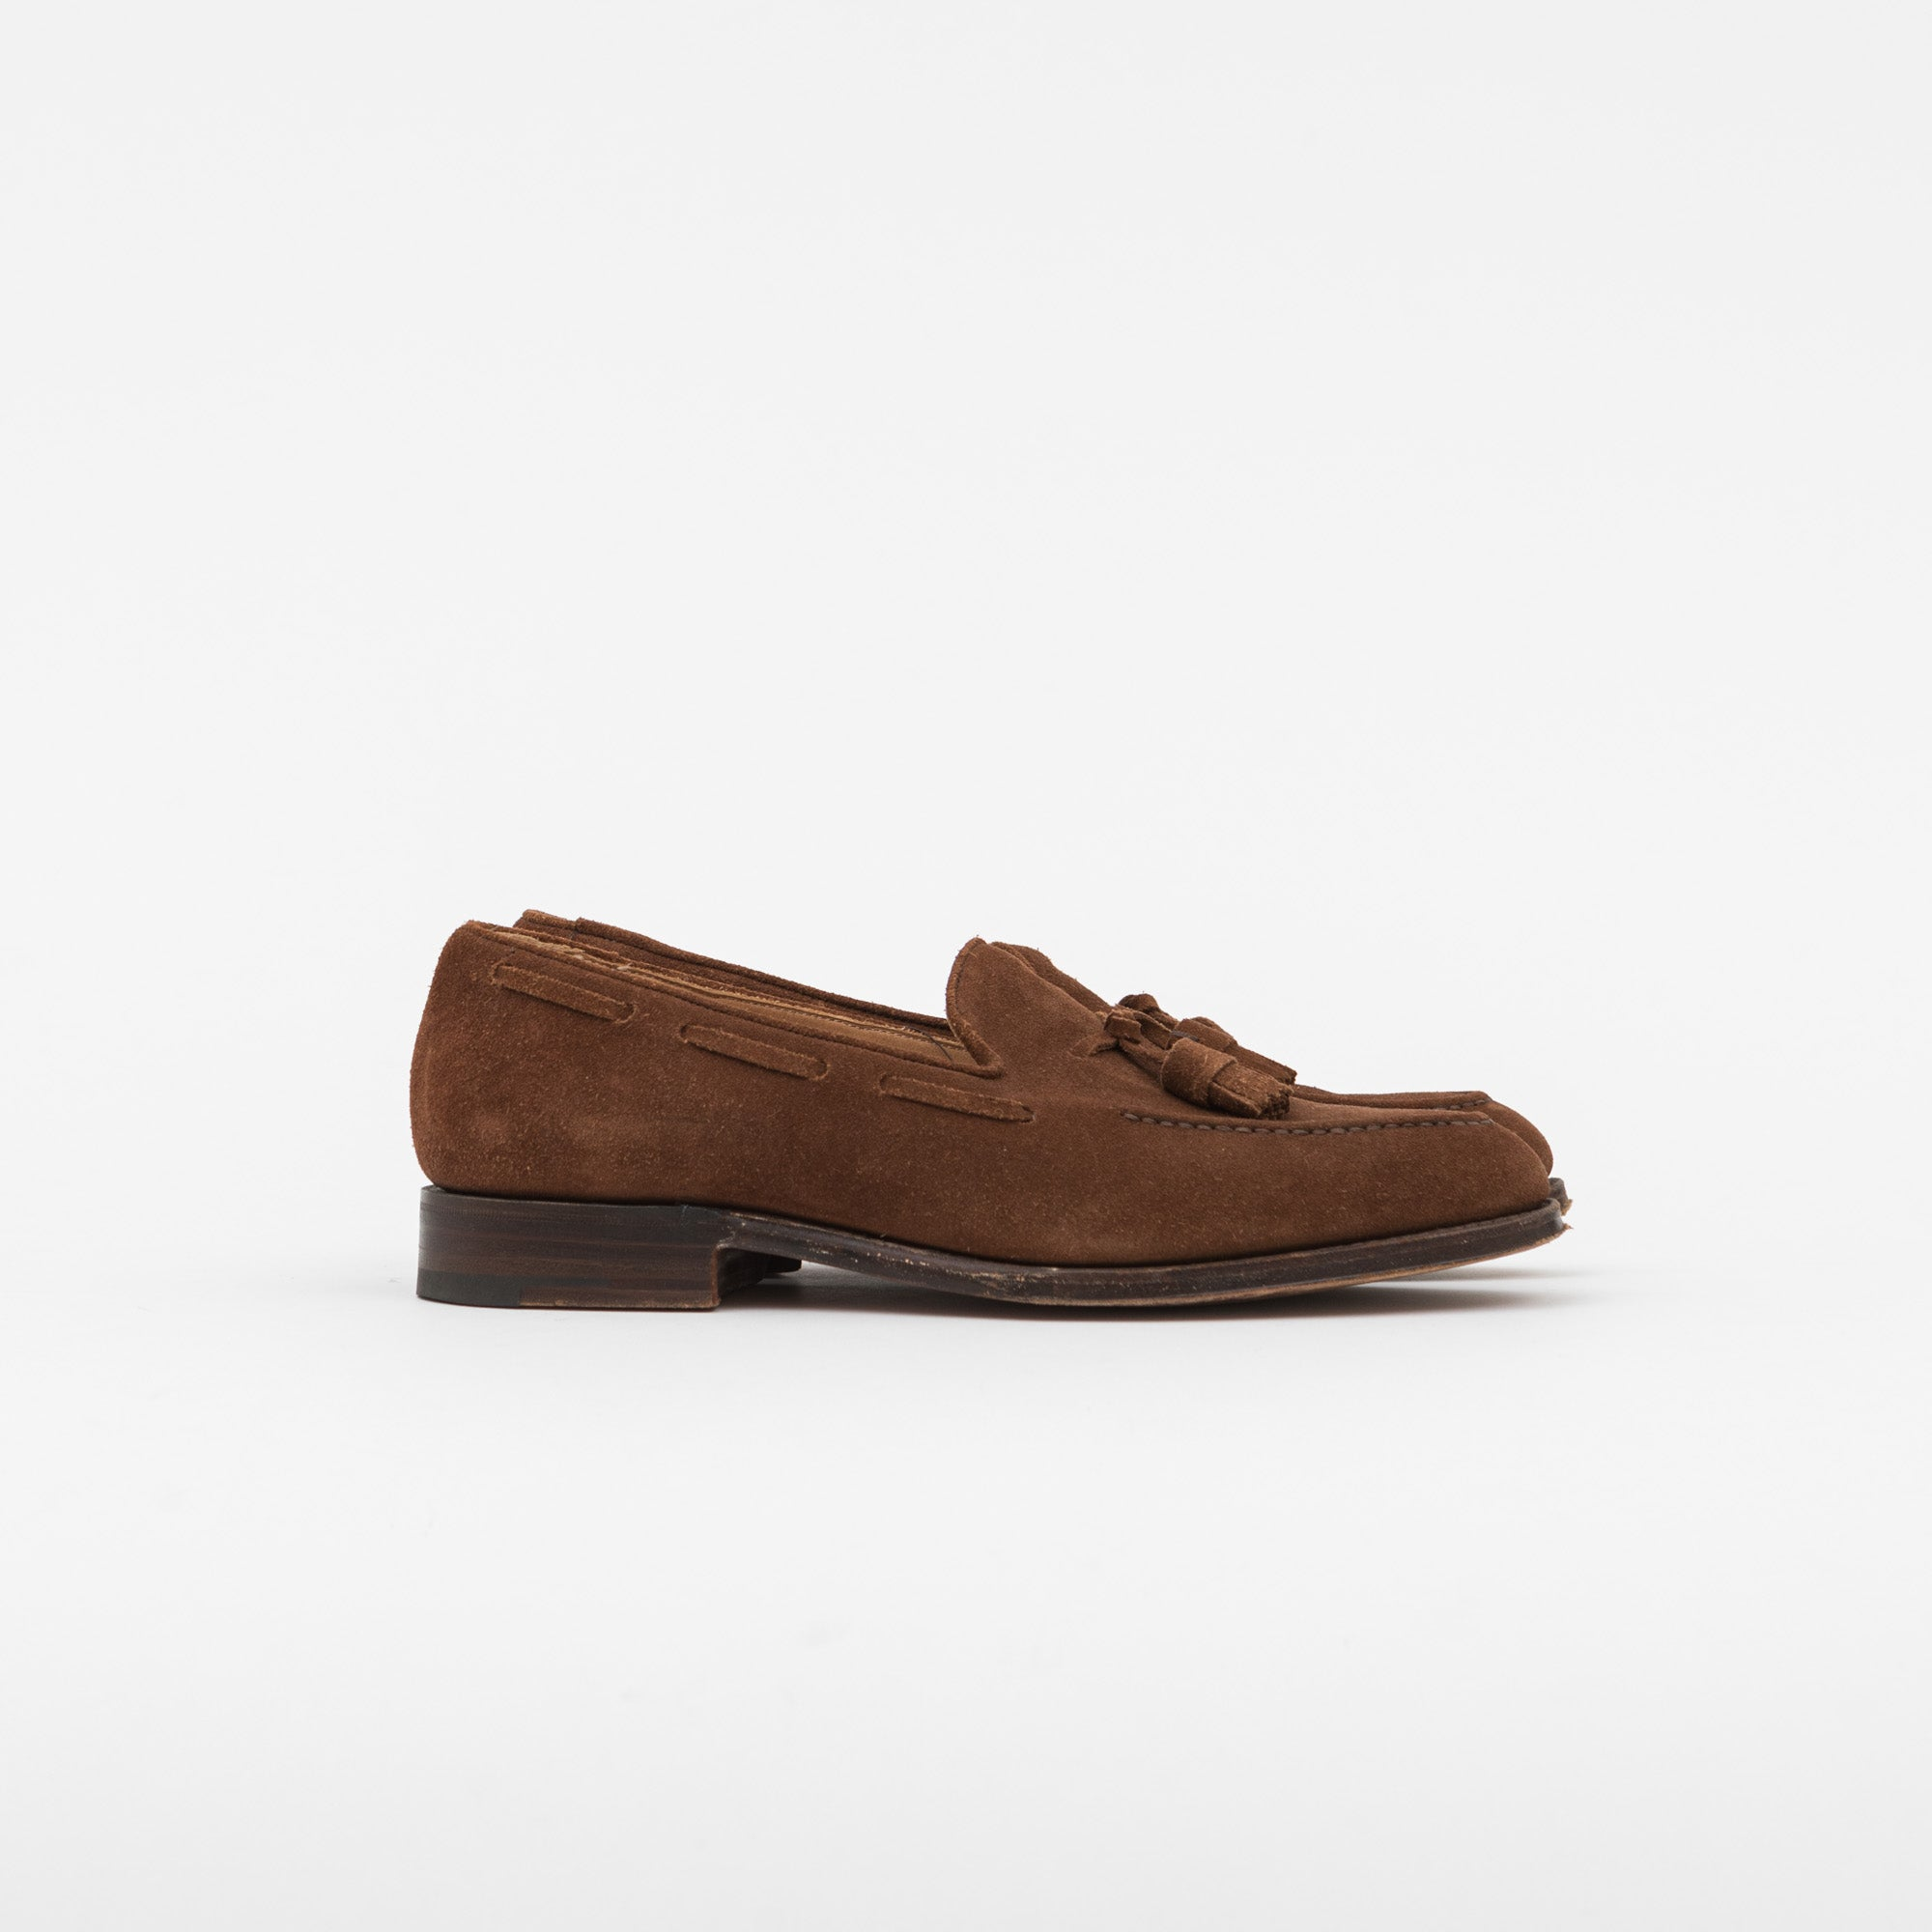 Foster & Son Suede Burford Penny Loafer